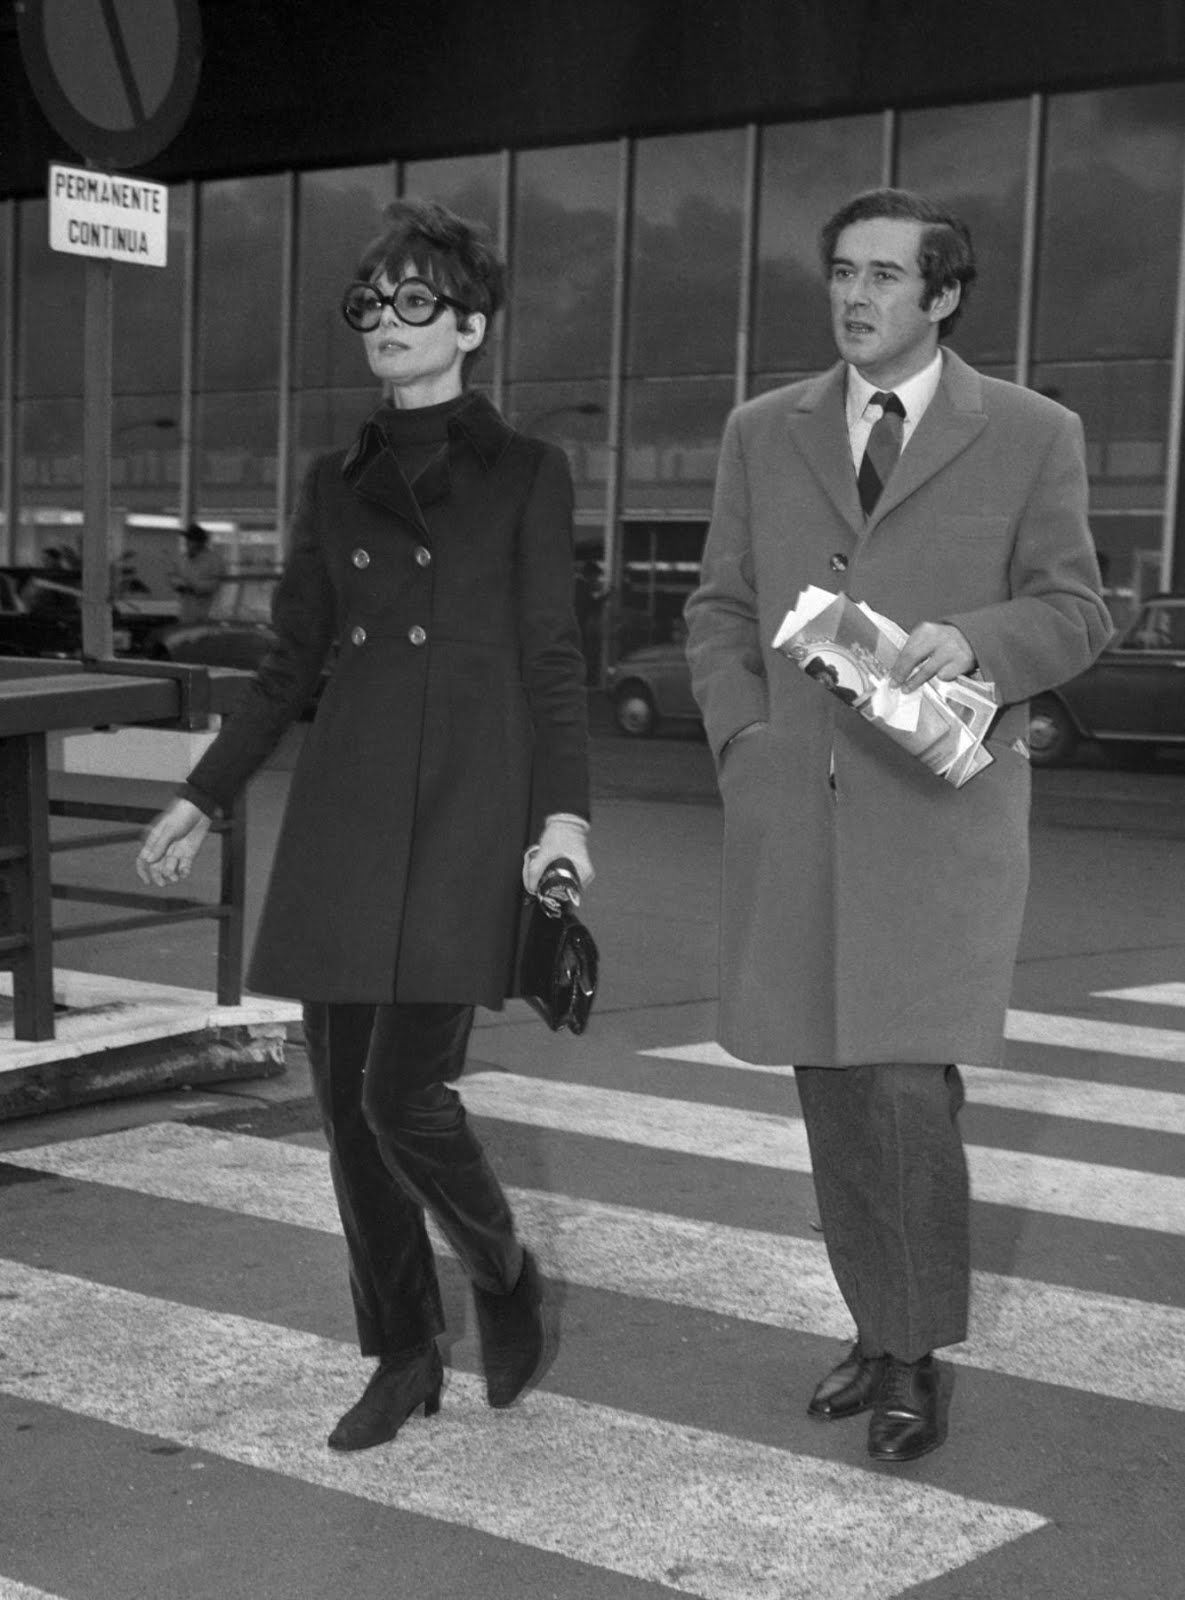 Audrey and husband Dr. Andrea Dotti at the airport awaiting the arrival of their friend Capucine. Rome, Italy, February 14, 1969.